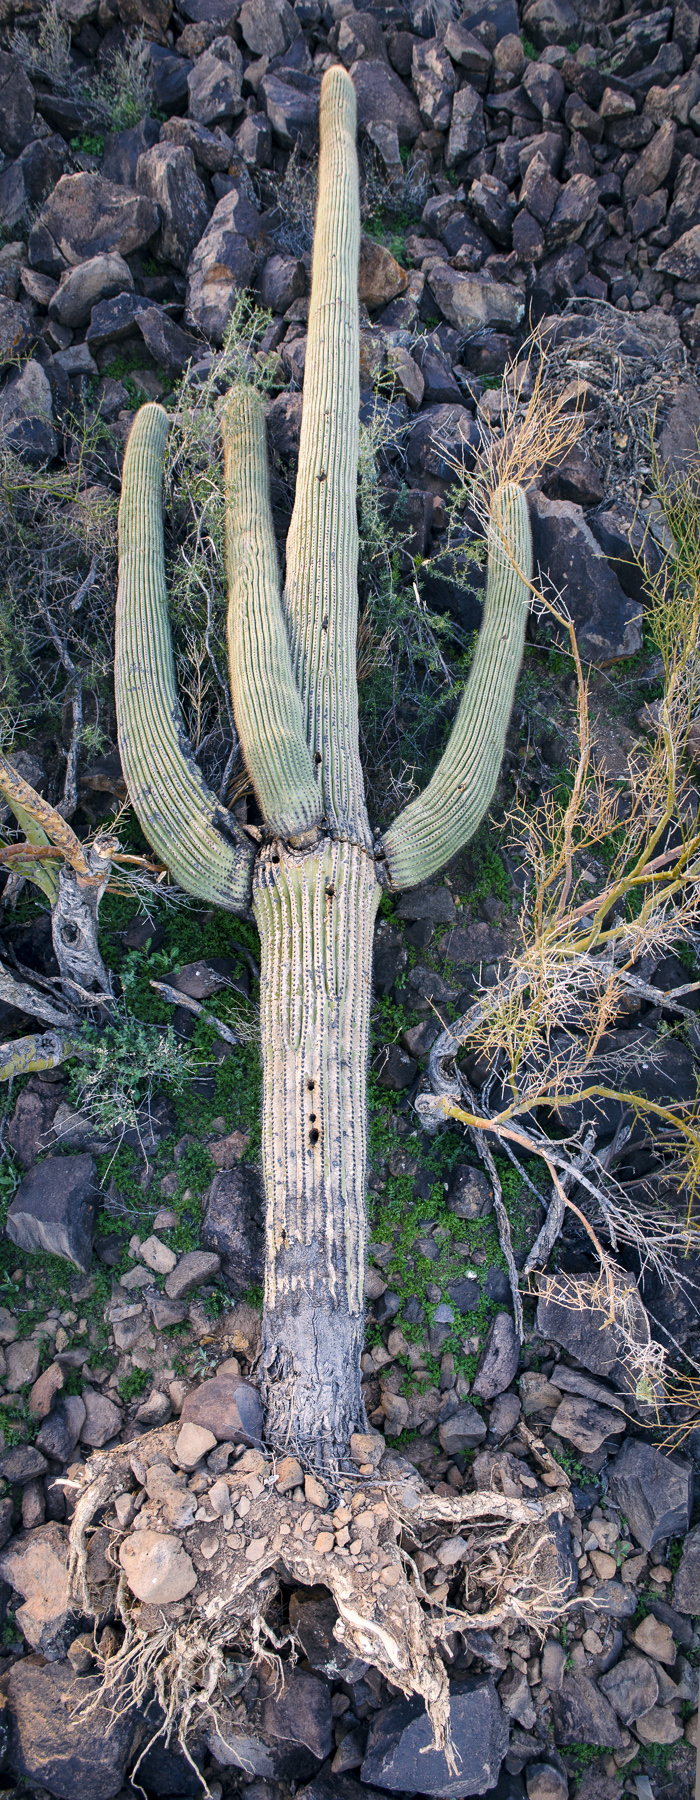 Fallen Saguaro, photo by paul mirocha